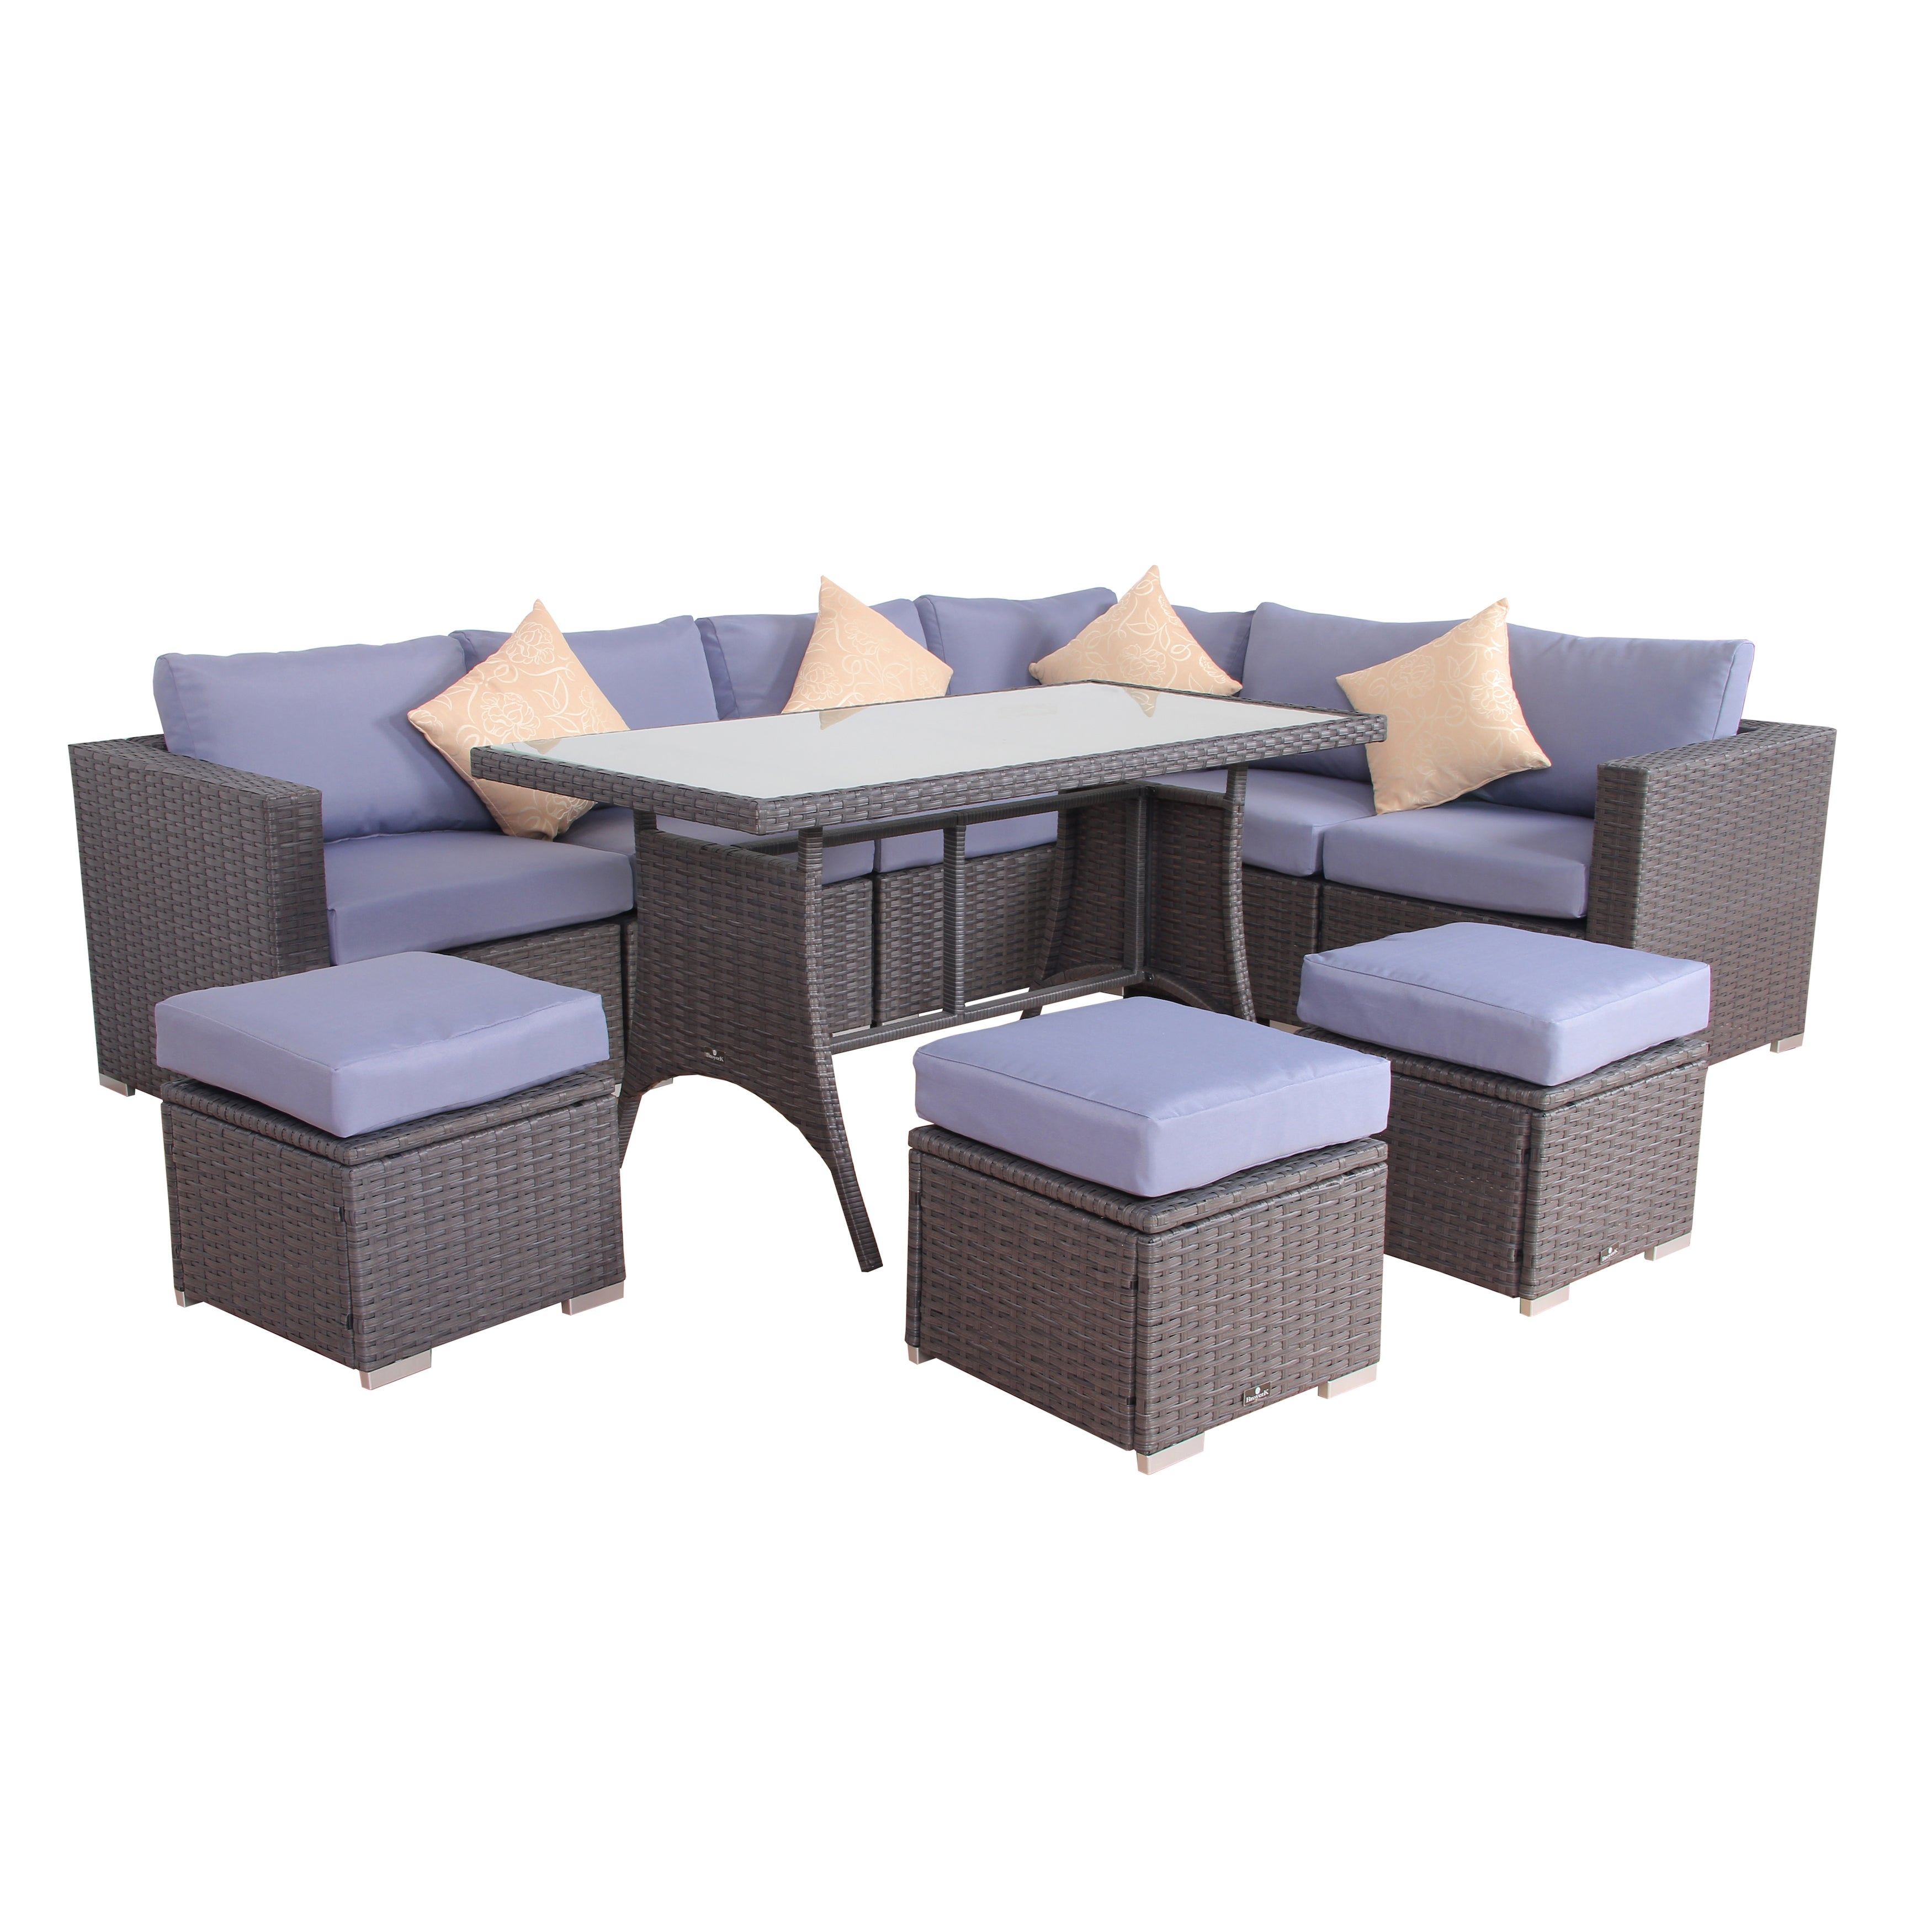 BroyerK Blue Grey Rattan 10 piece Patio Furniture Set Free